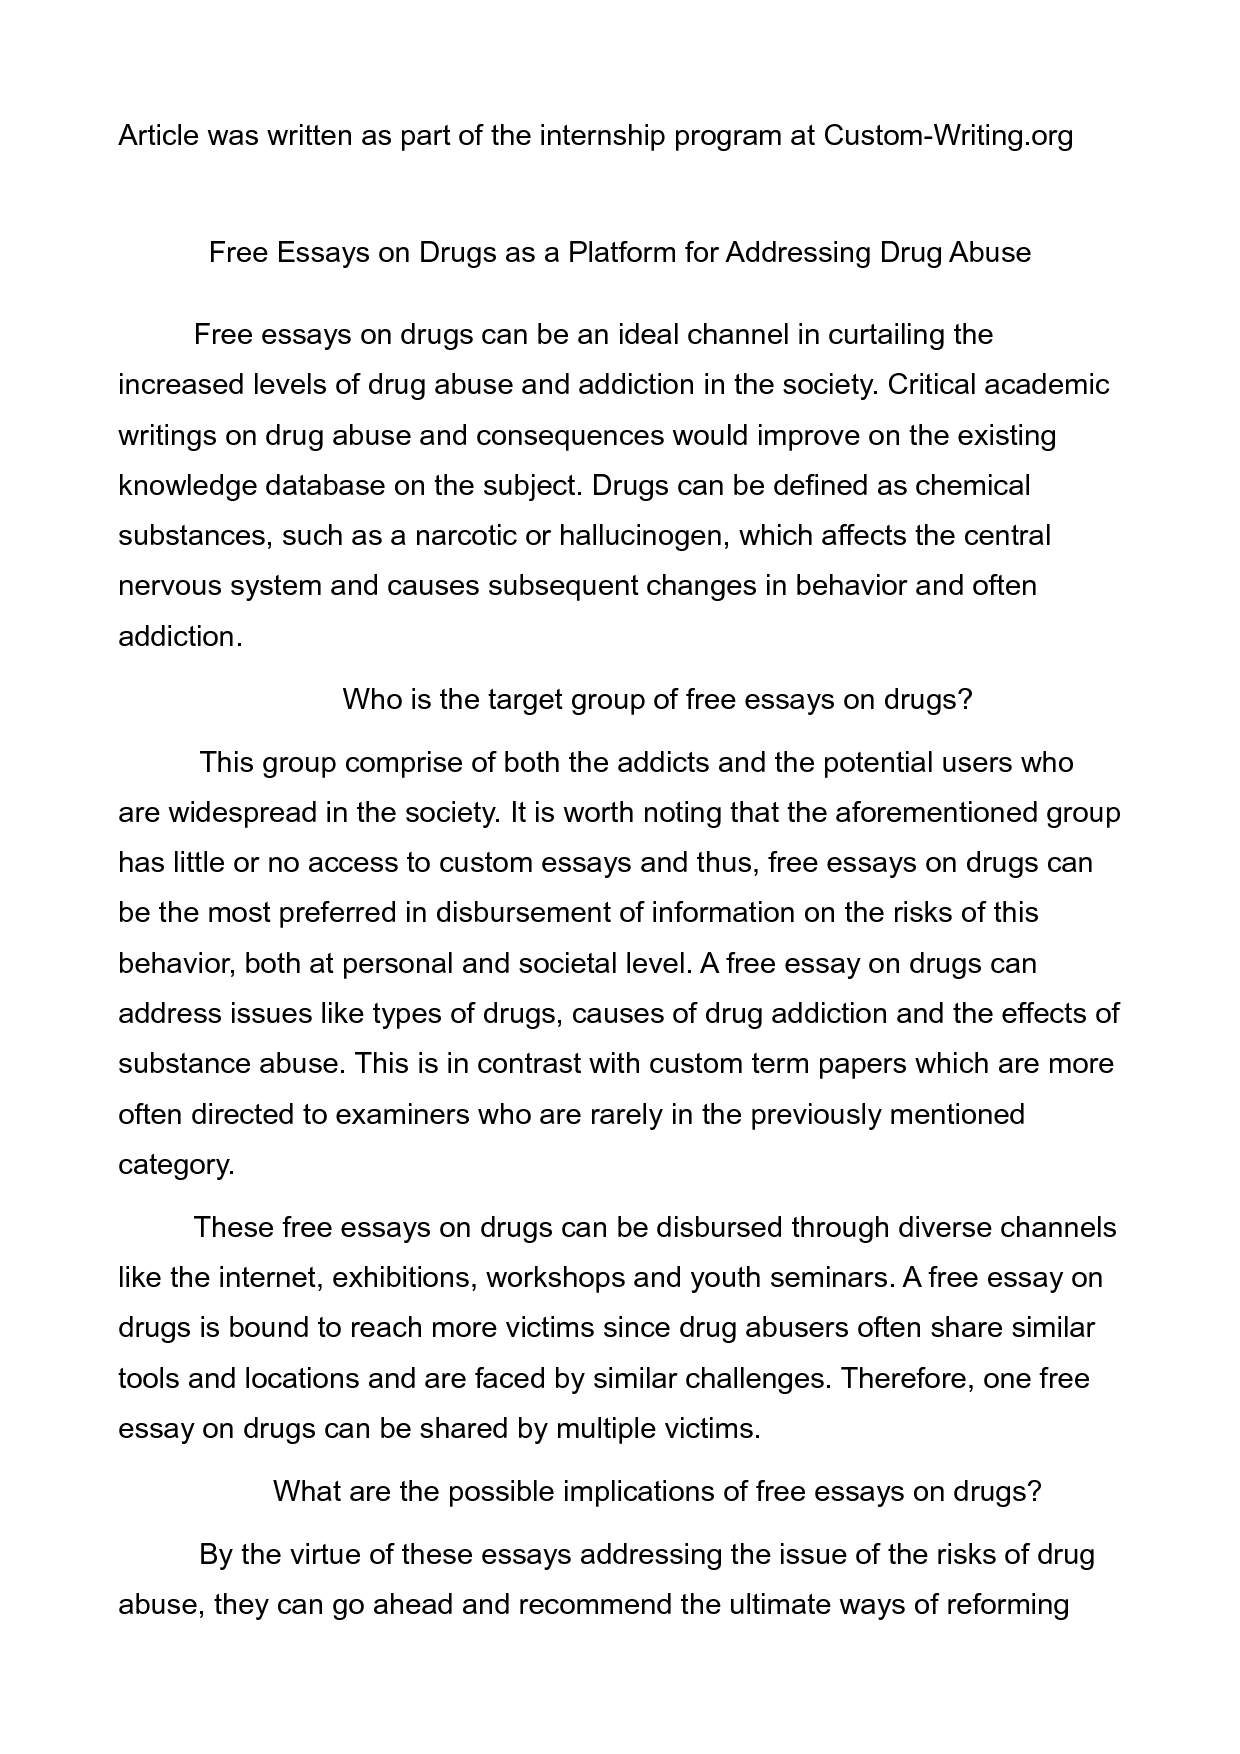 009 Argumentative Essay About Drugs Amazing Graphic Organizer College Template For Middle School Format 9th Grade Full